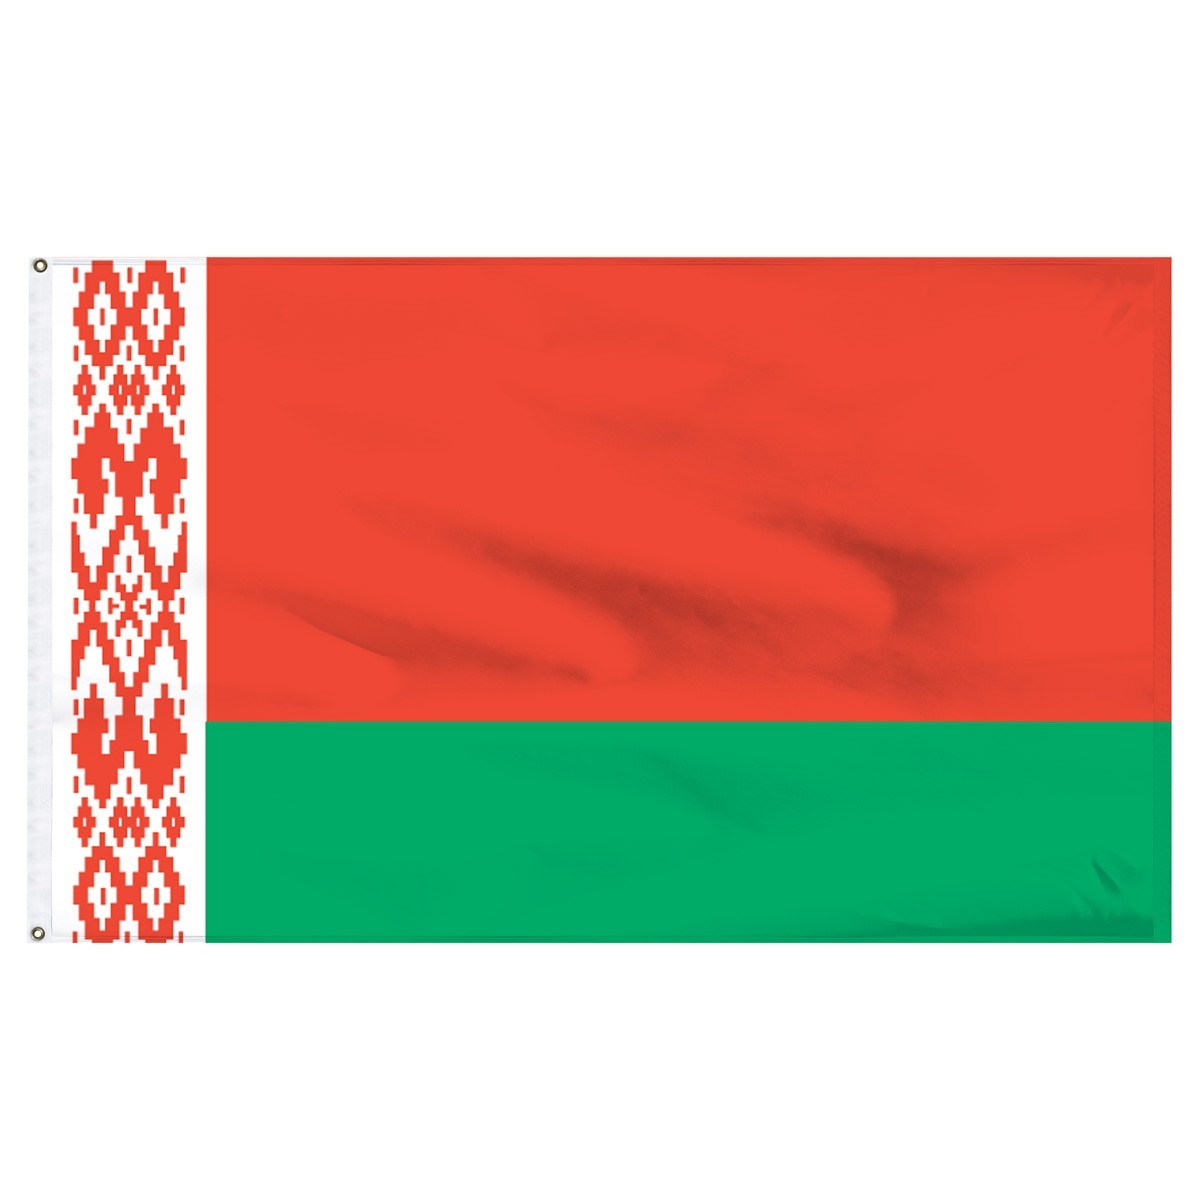 Belarus 5' x 8' Outdoor Nylon Country Flag